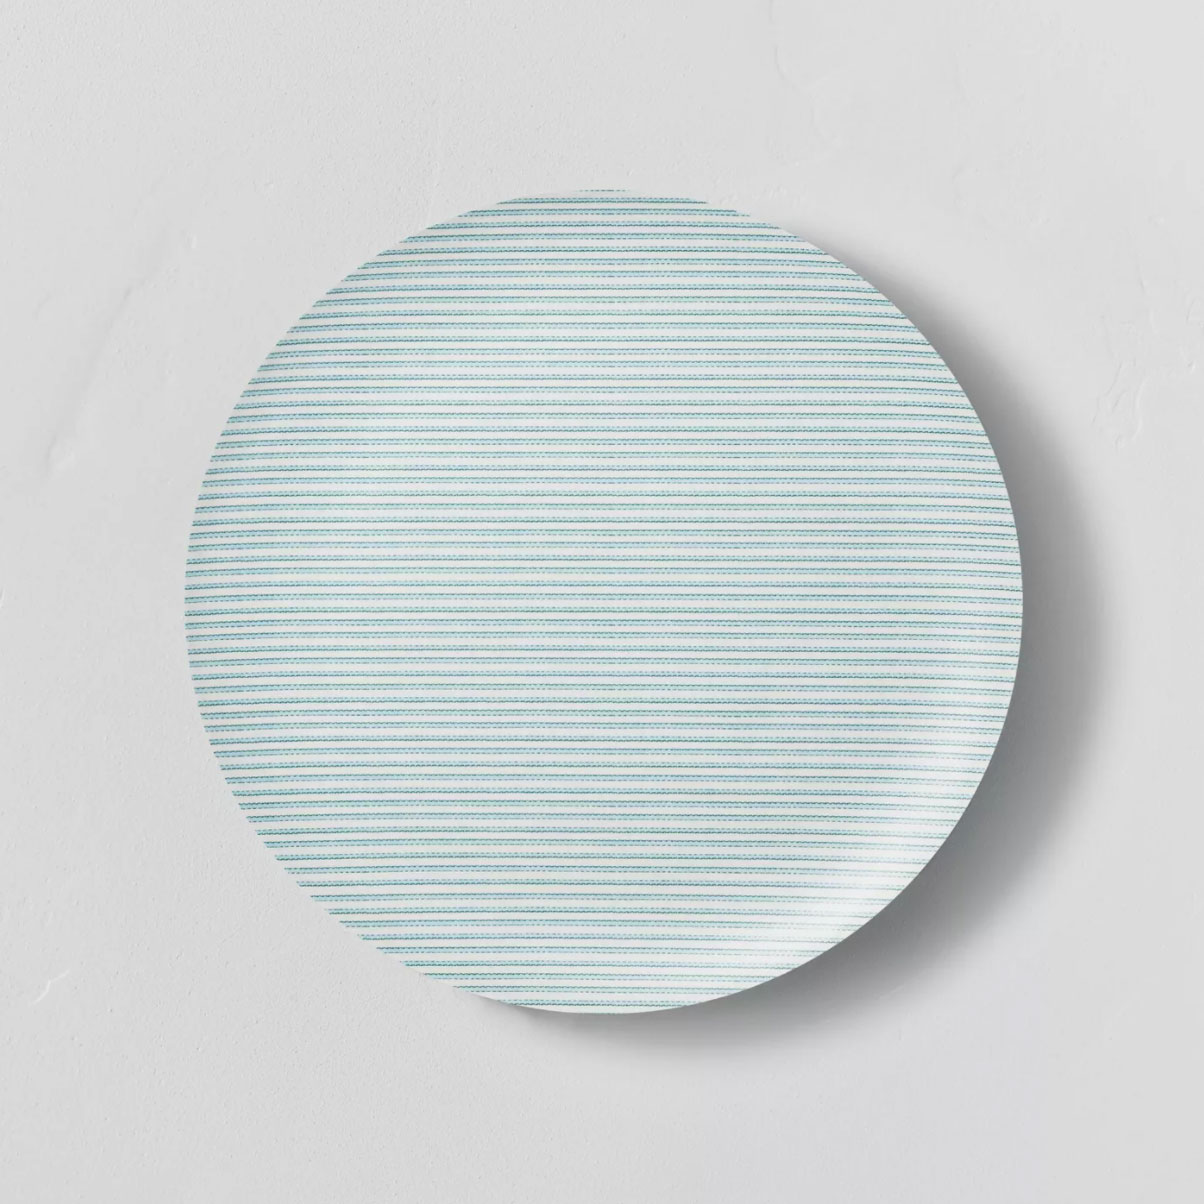 Hearth & Hand with Magnolia Bamboo Melamine Ticking Stripes Dinner Plate